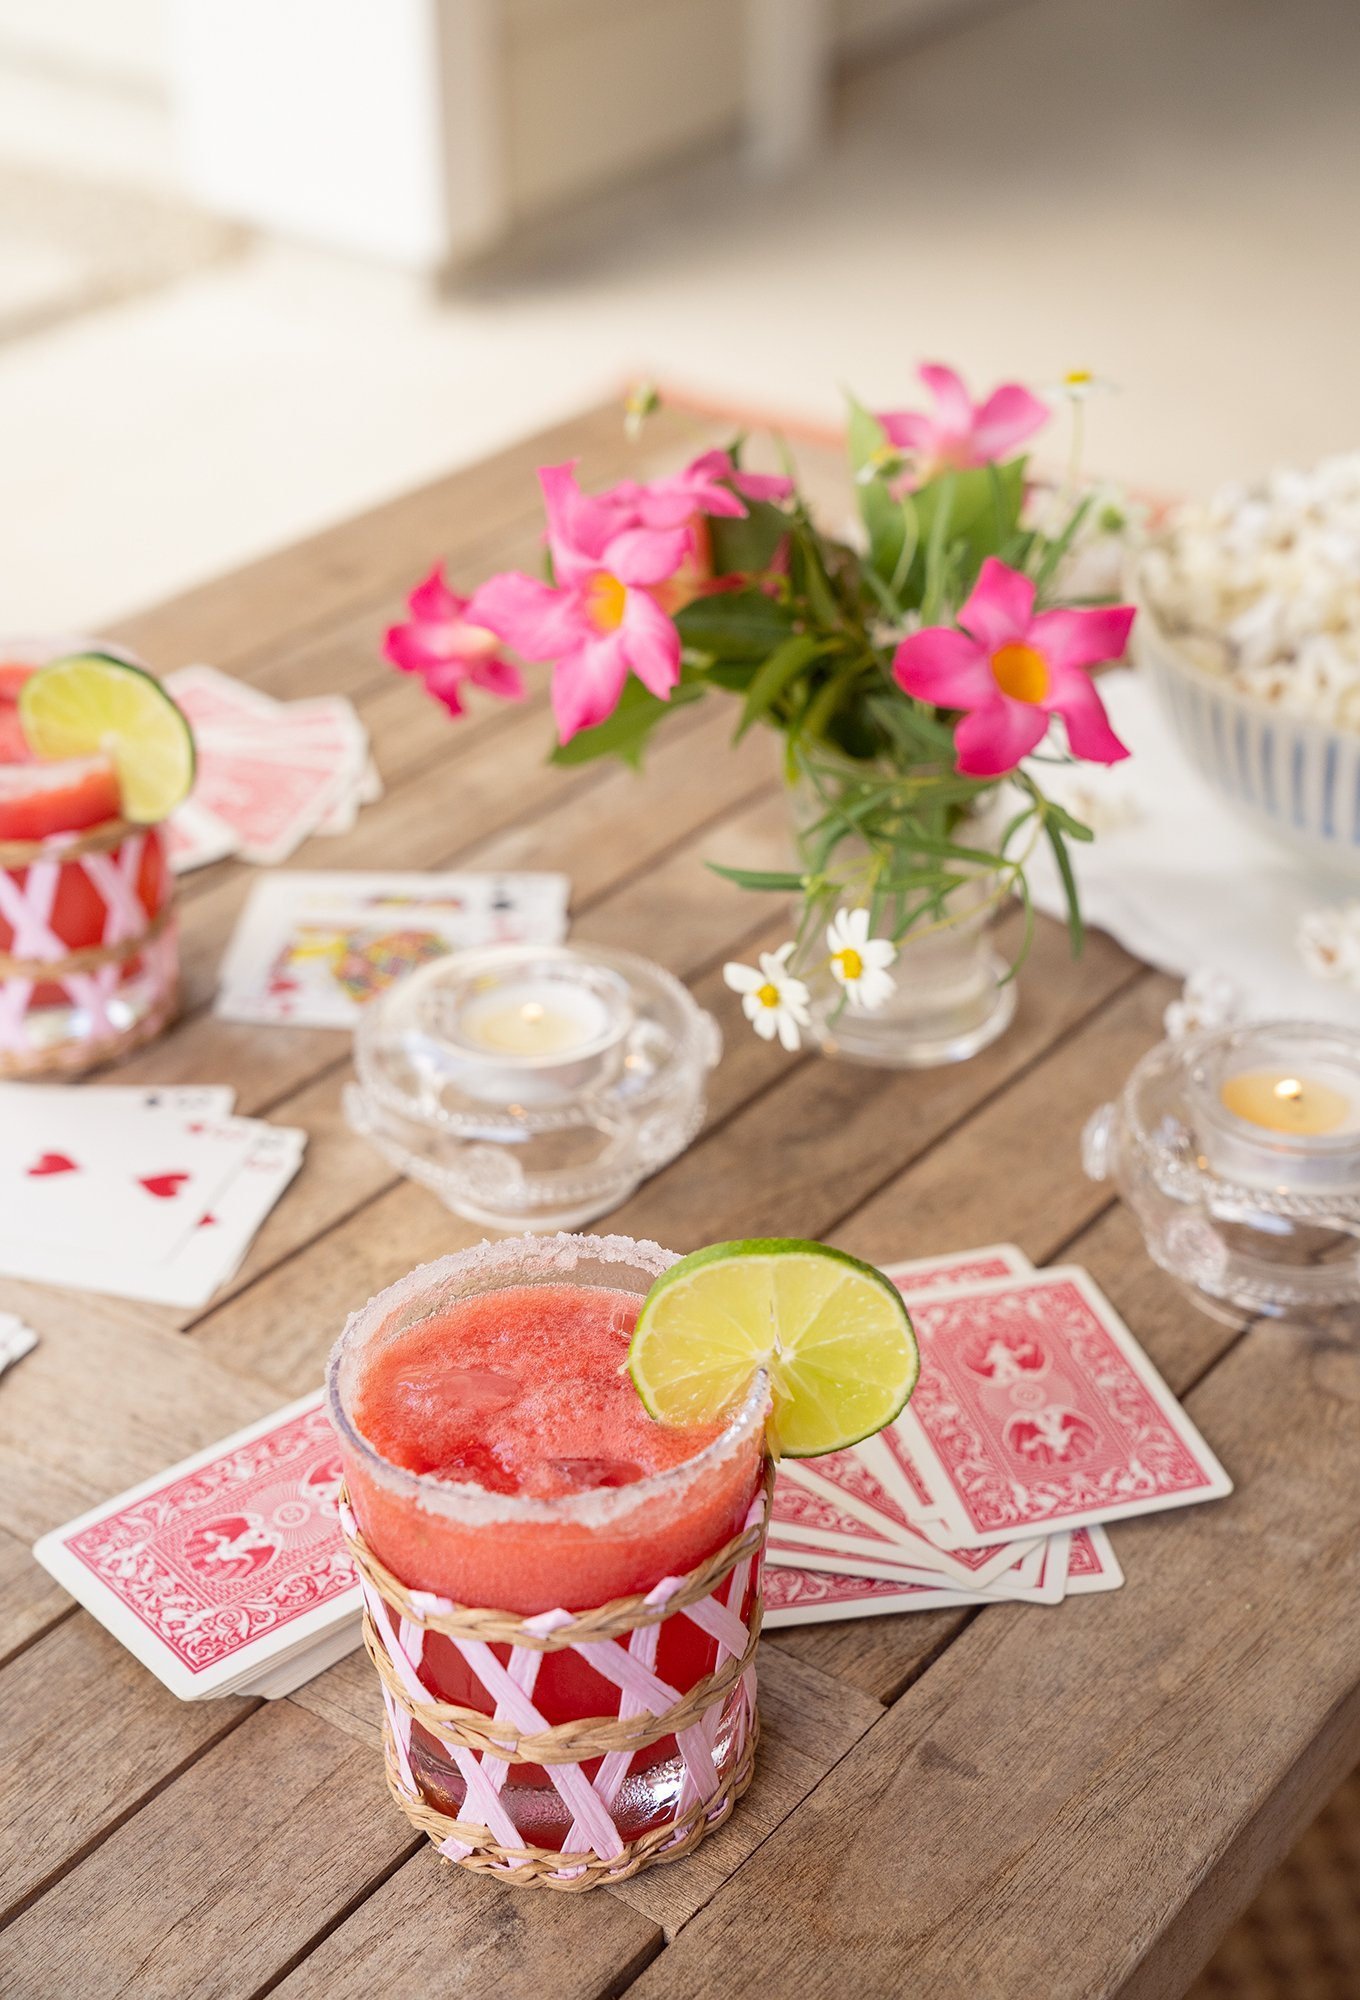 Ashley Brooke's watermelon margarita recipe with Lindroth Designs cup.